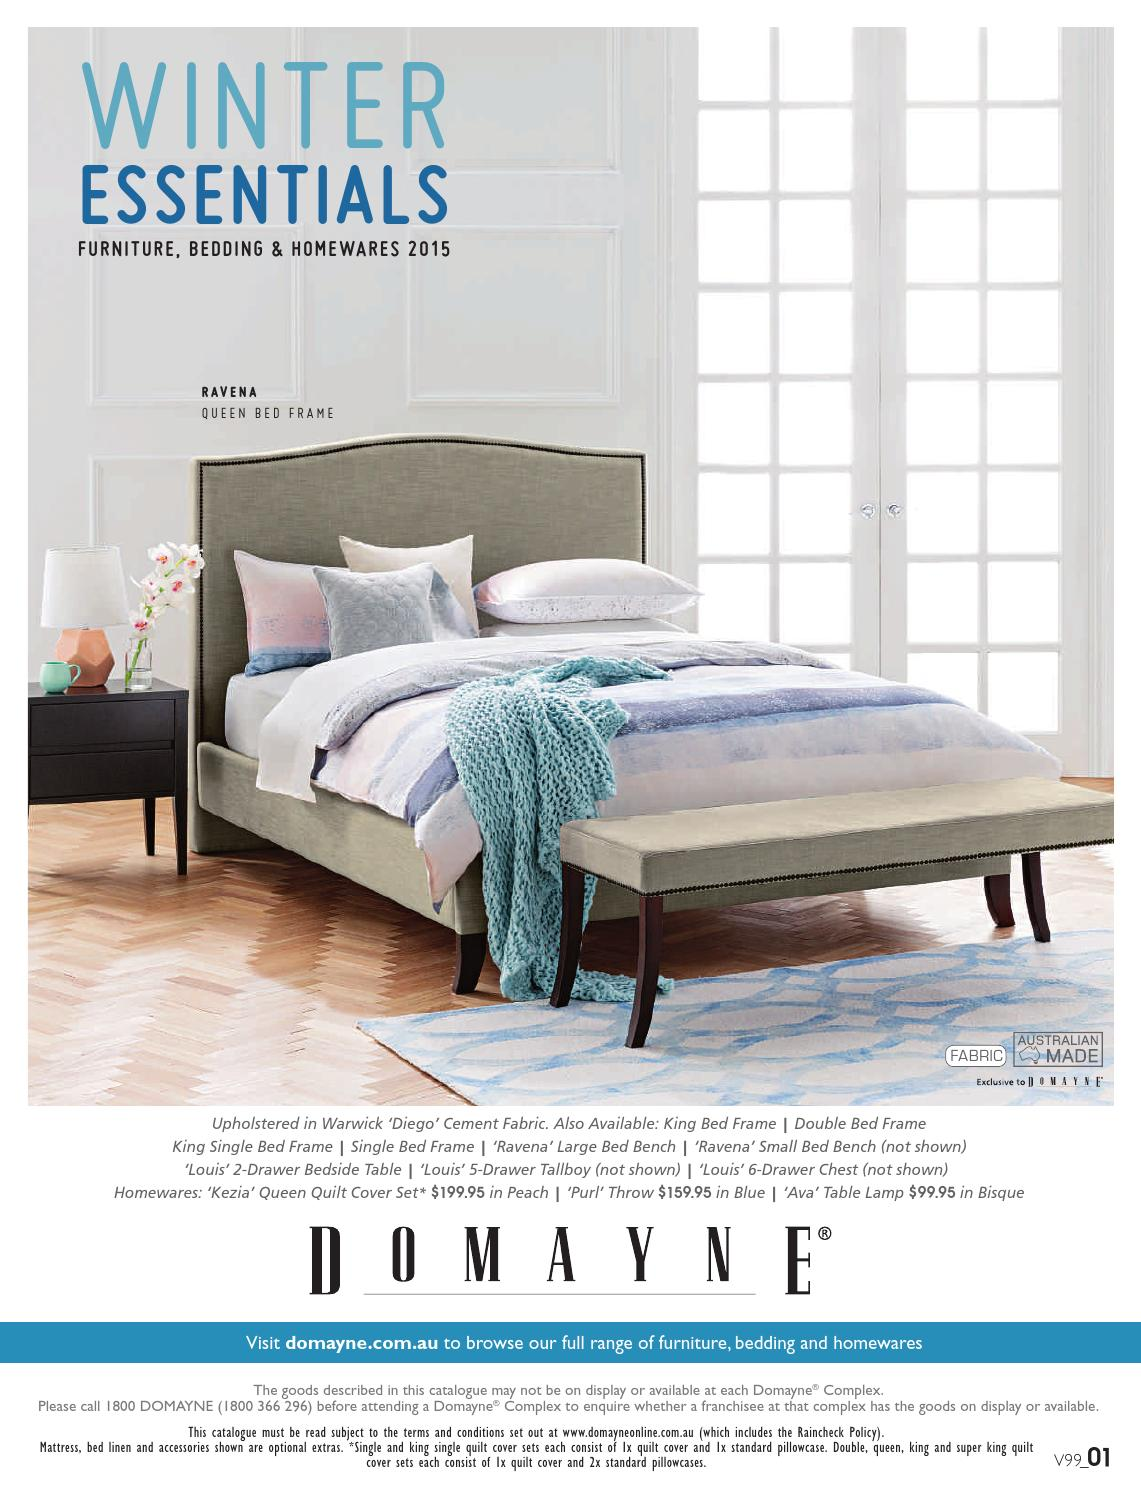 Domayne Beds Catalogue Winter Essentials Furniture Bedding And Homewares By